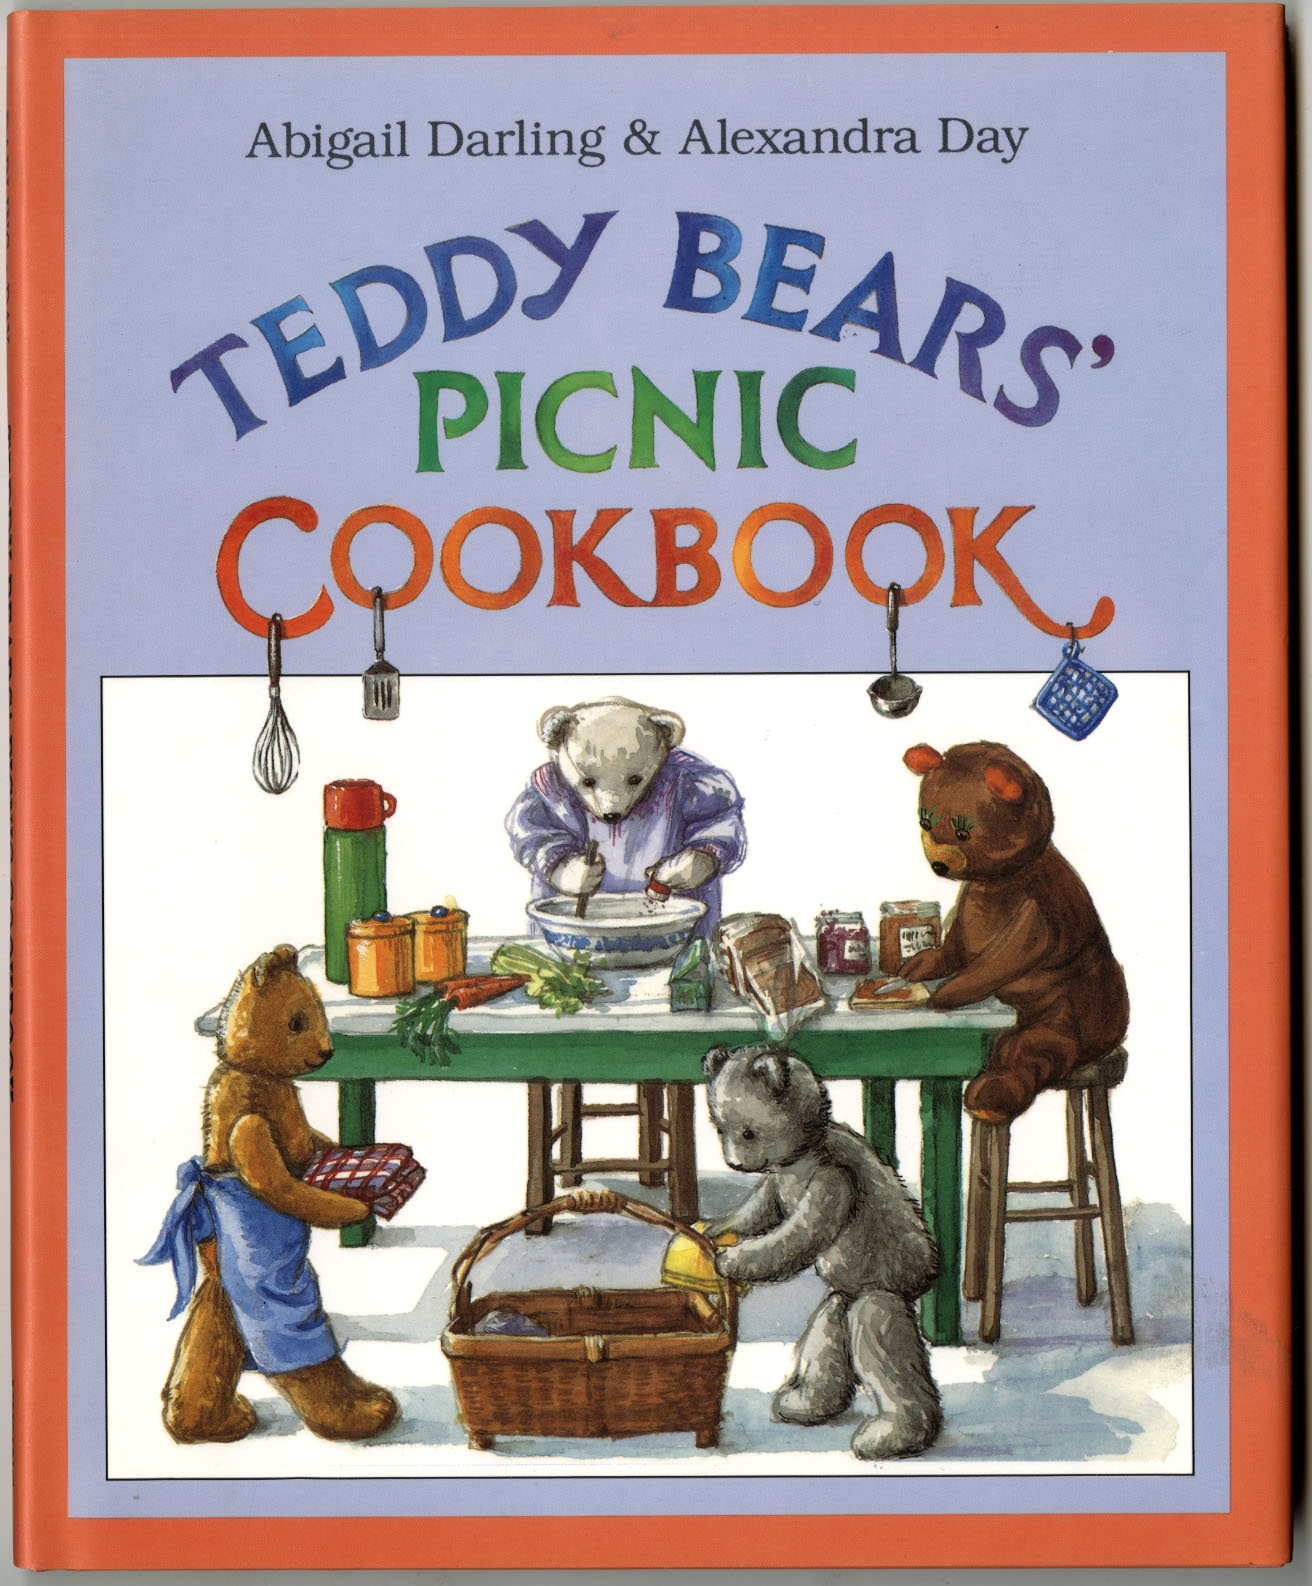 """The Teddy Bears' Picnic Cookbook"" Cover by Alexandra Day"